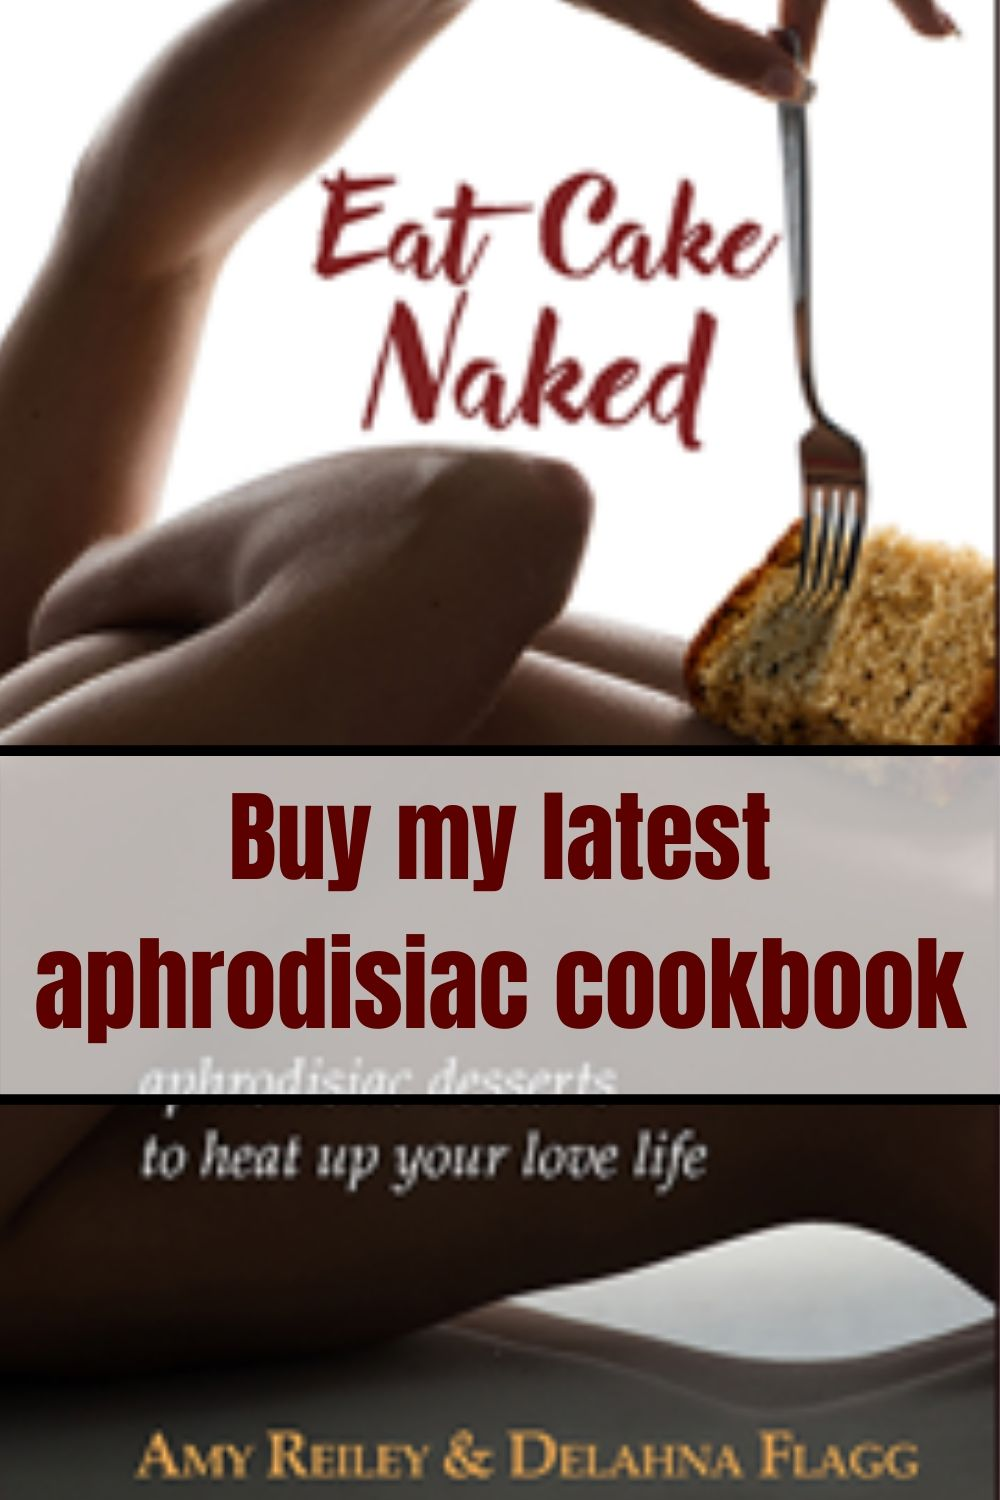 Eat Cake Naked - an aphrodisiac dessert cookbook advertisement